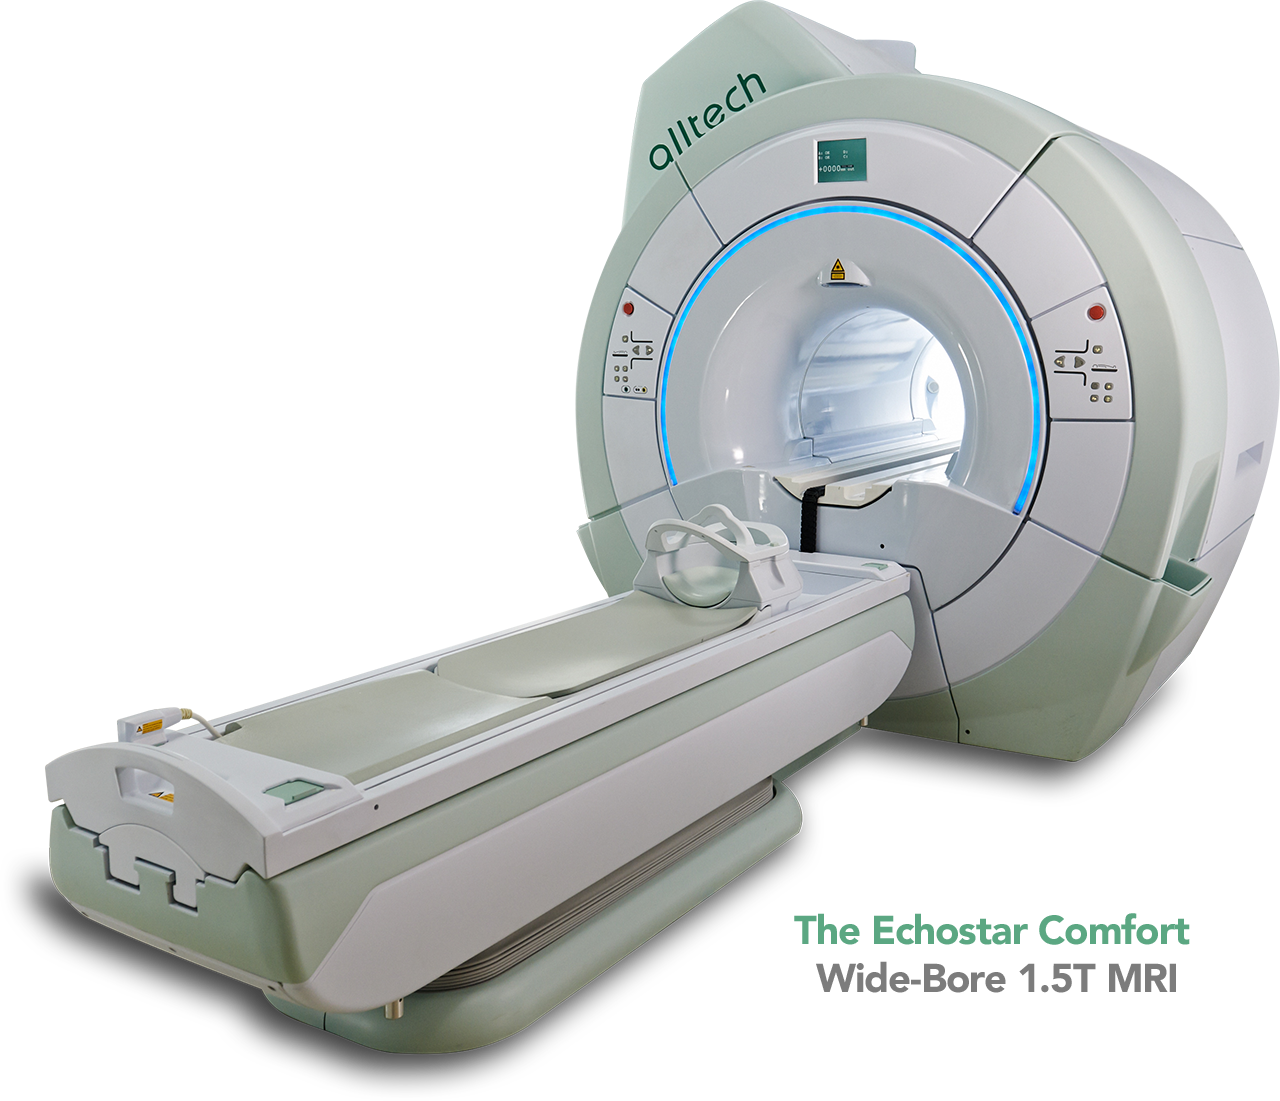 The Echostar Comfort	Wide-Bore 1.5T MRI